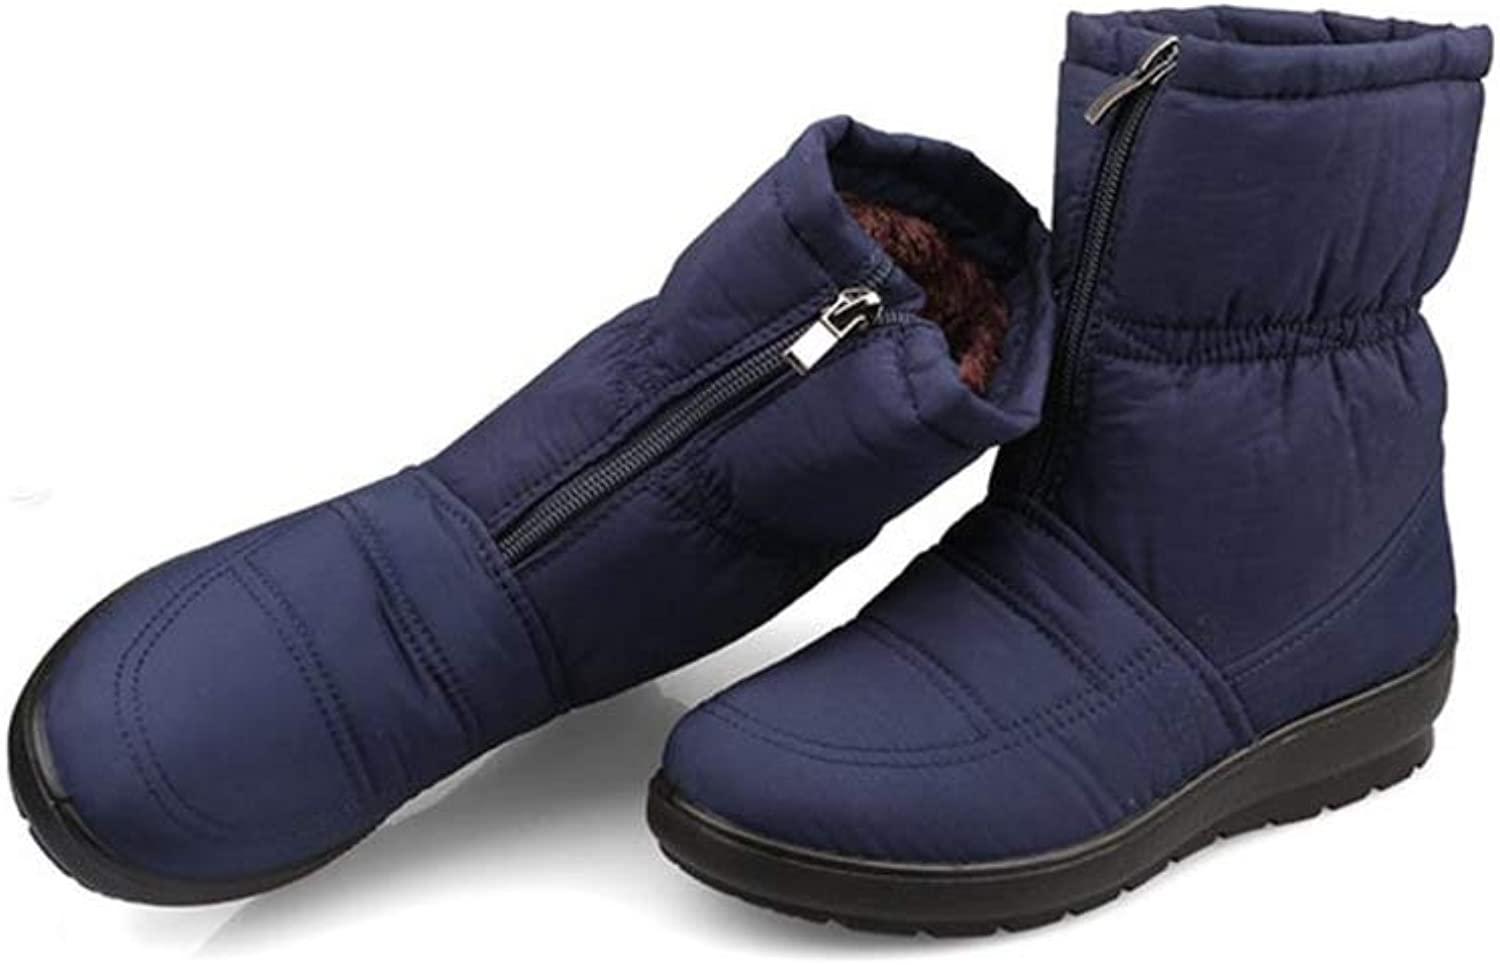 FORTUN Winter Cotton shoes Mother shoes Flat Snow Boots Women's Boots Casual